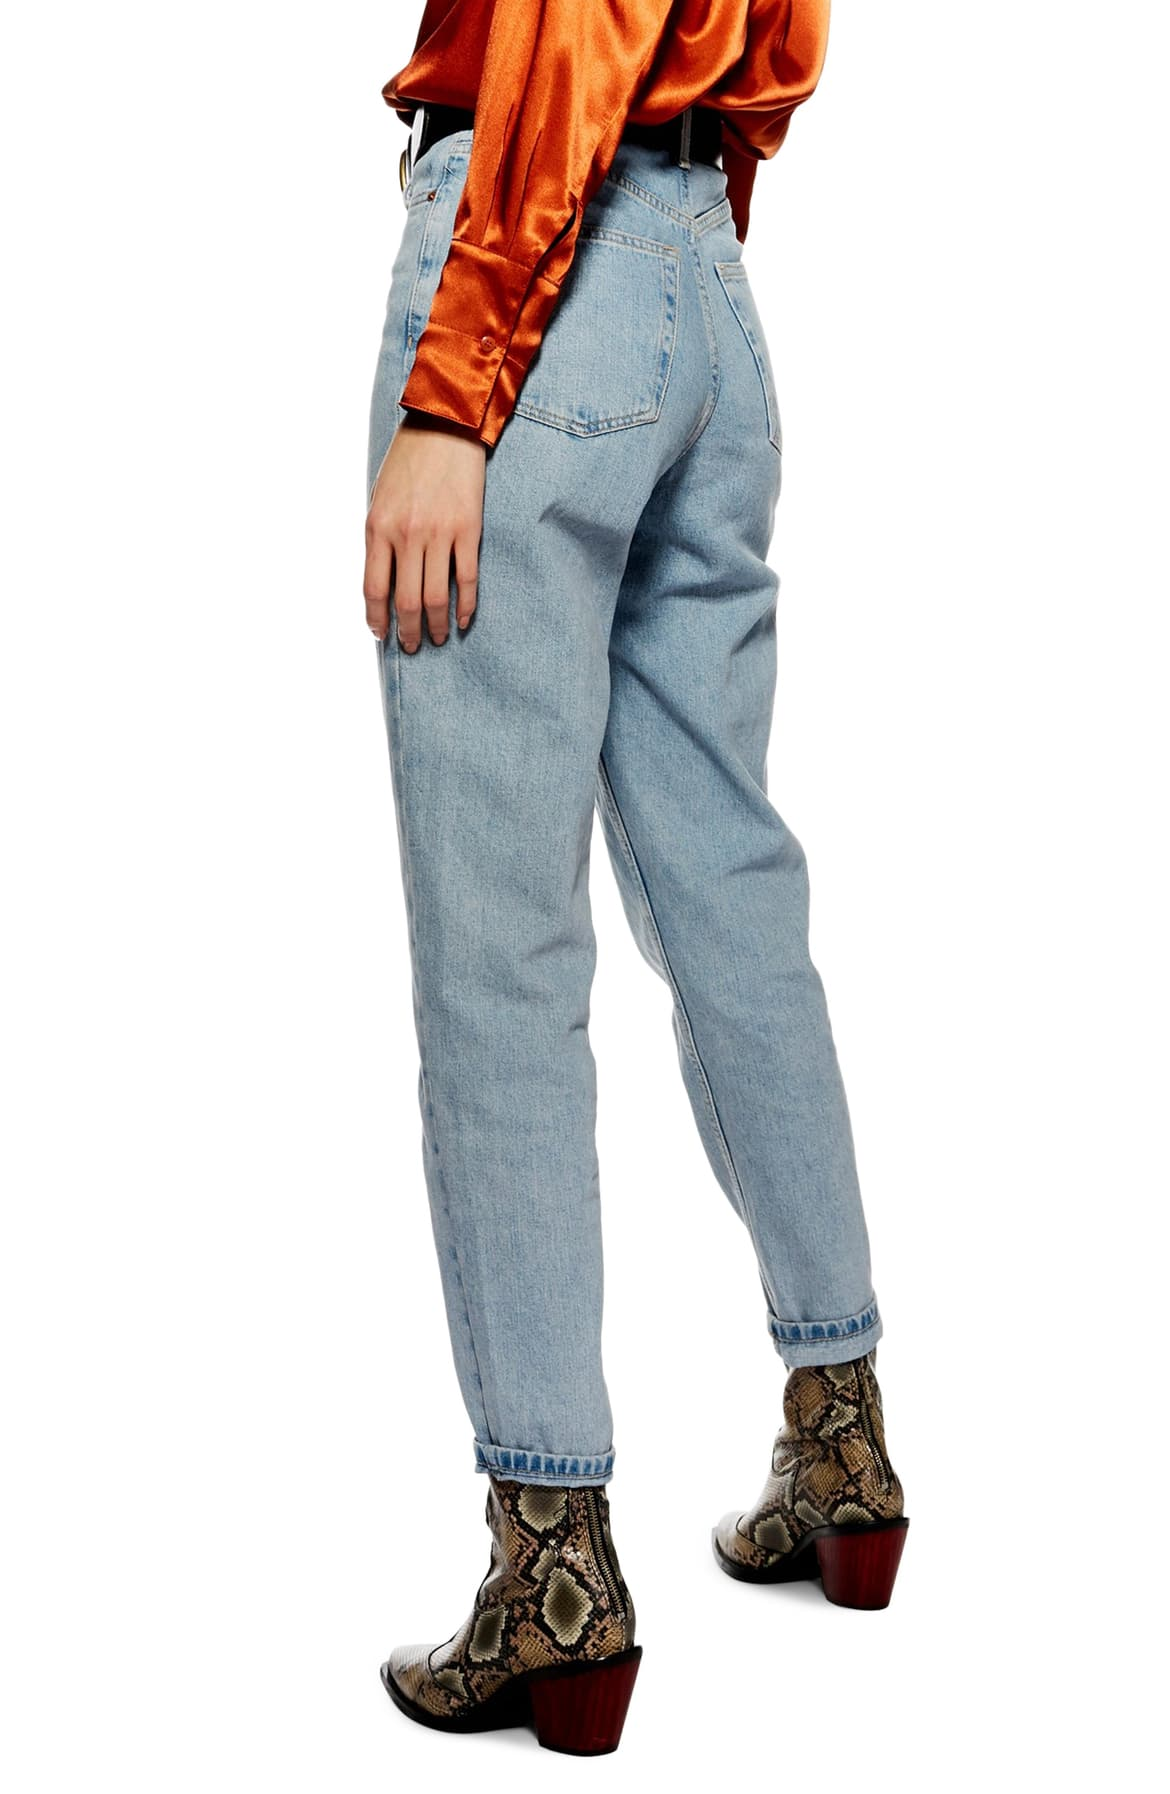 Bleach ripped mom jeans - need I say more? Make your own, or get these bad boys for $75.{ } You could also raid Goodwill or your mom's closet?{ } Just sayin. (Image: Nordstrom){ }